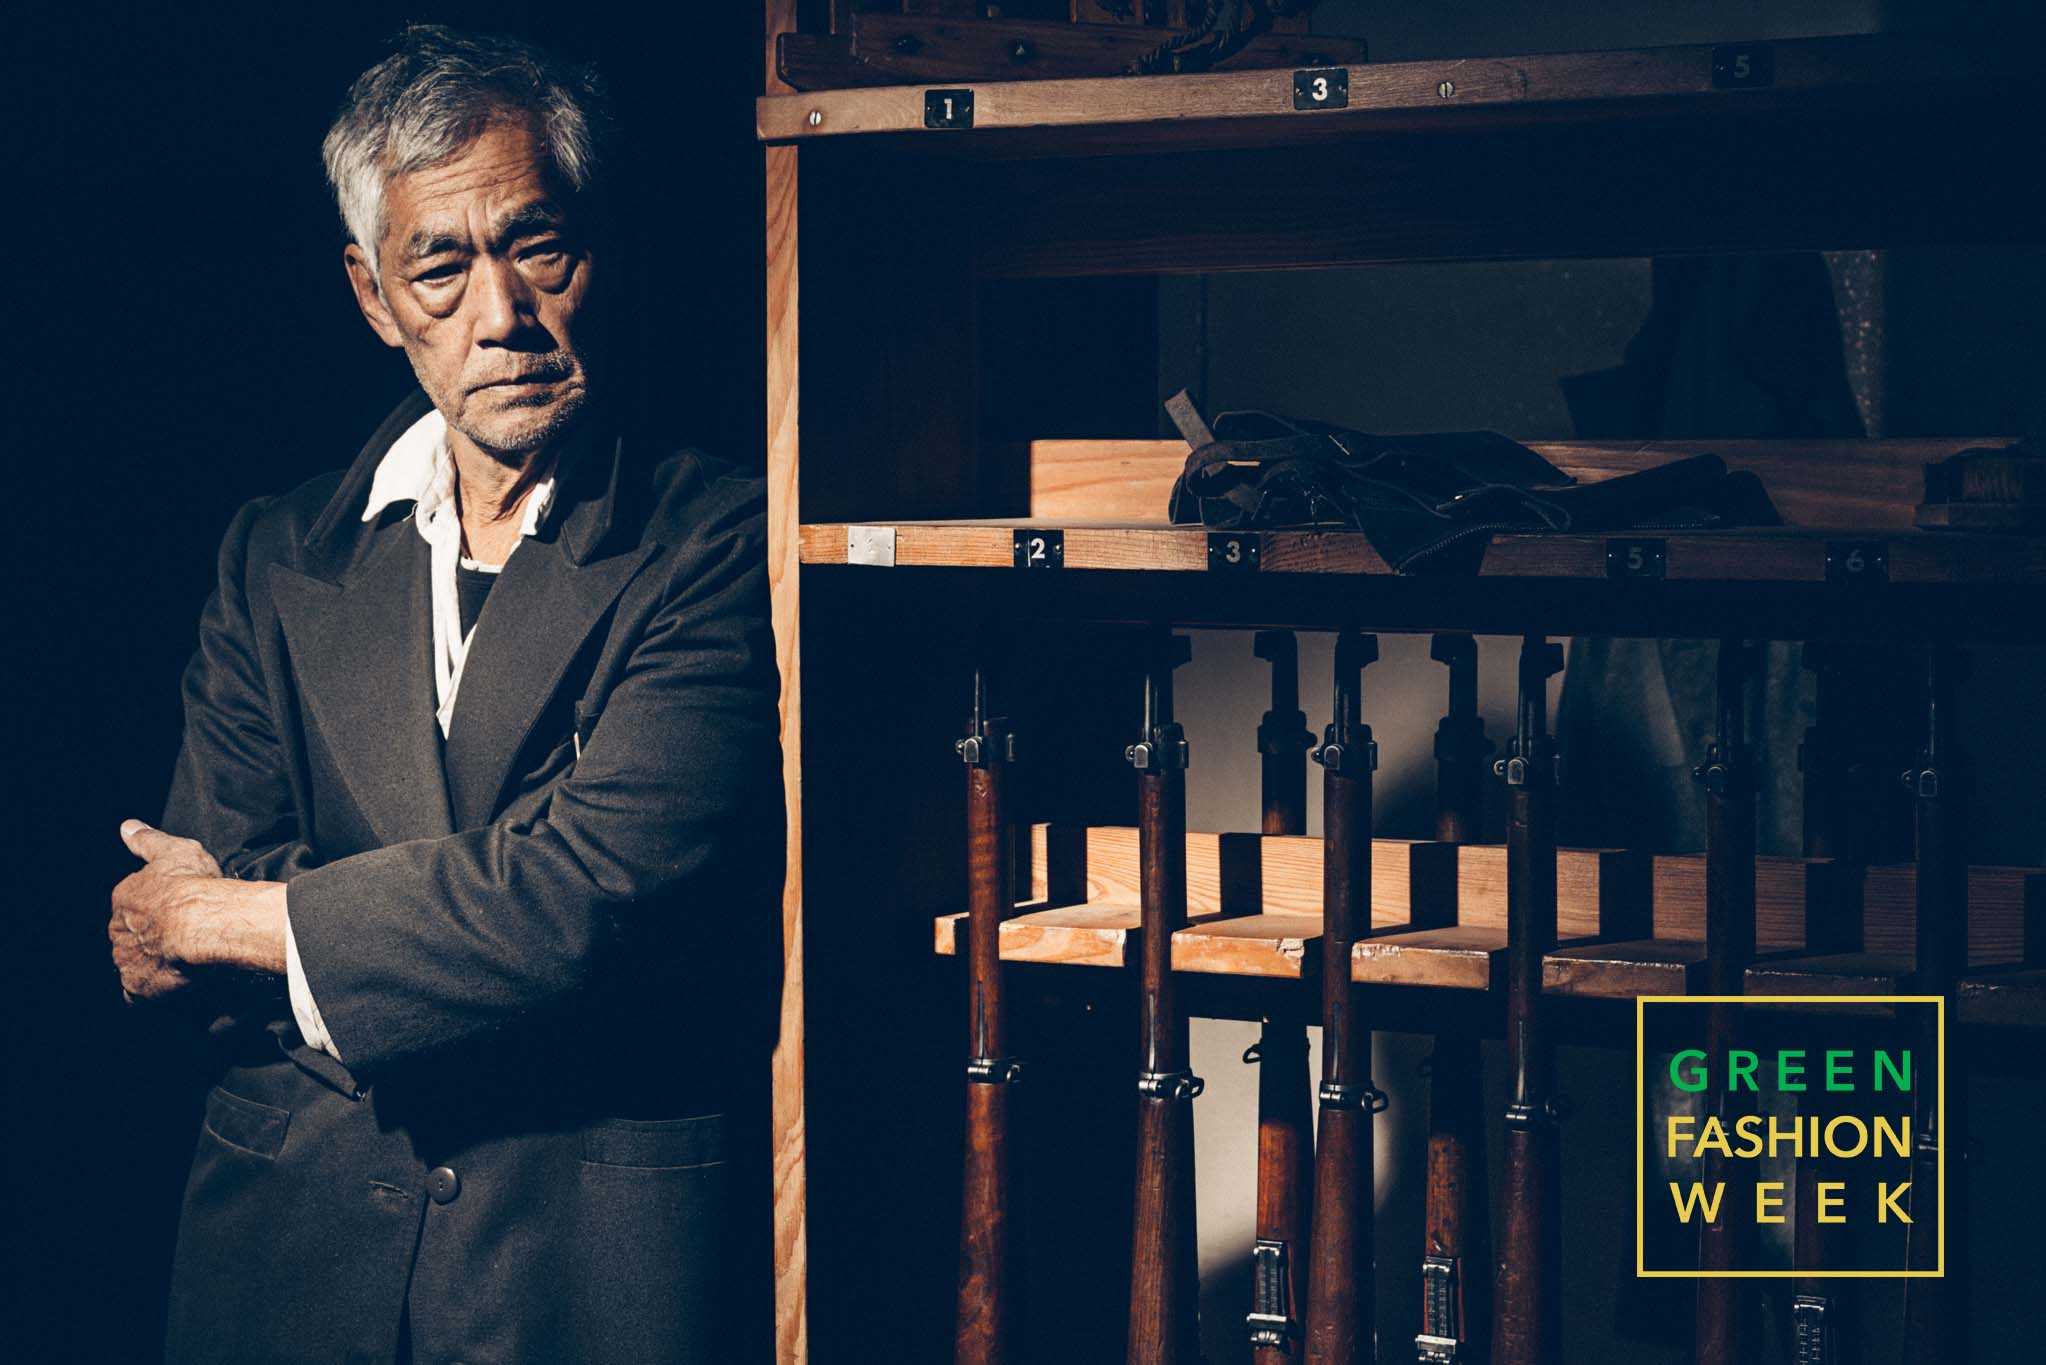 Hollywoodian actor Hal Yamanouchi poses next to Museum's World War II guns. Photo Credit: Vittorio La Fata | www.vittoriolafata.it